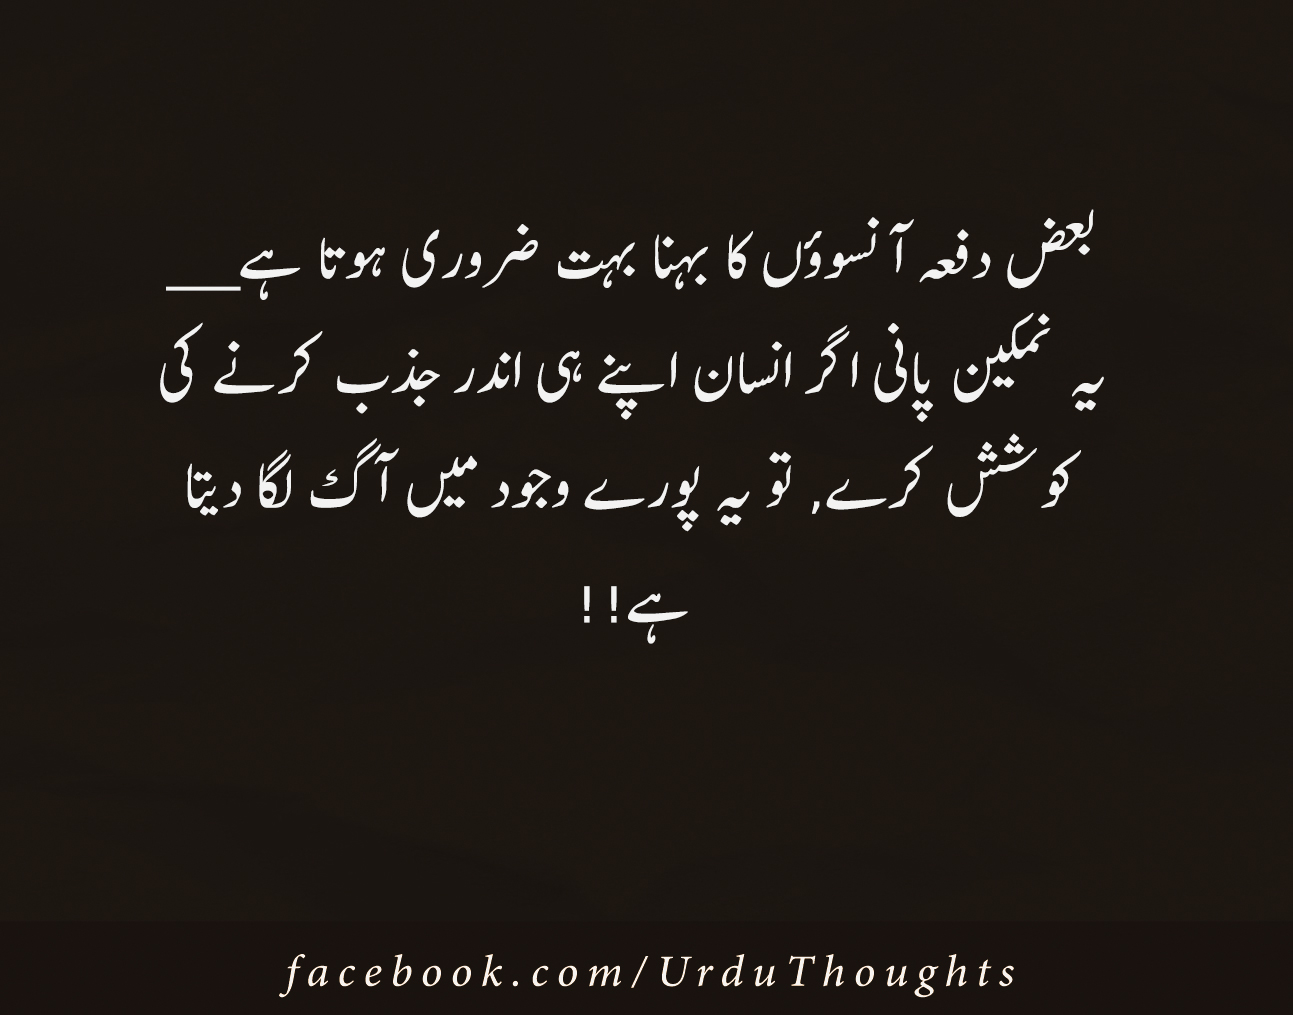 Beautiful Urdu Quotes About People Life Things  Urdu Thoughts. Quotes About Children's Strength. Summer Hurry Up Quotes. Quotes About Moving On Short. Book Quotes On Happiness. Harry Potter Quotes Grief. Quotes About Moving On After Death Of Spouse. Smile Quotes Cover. Good Vibes Quotes Tagalog